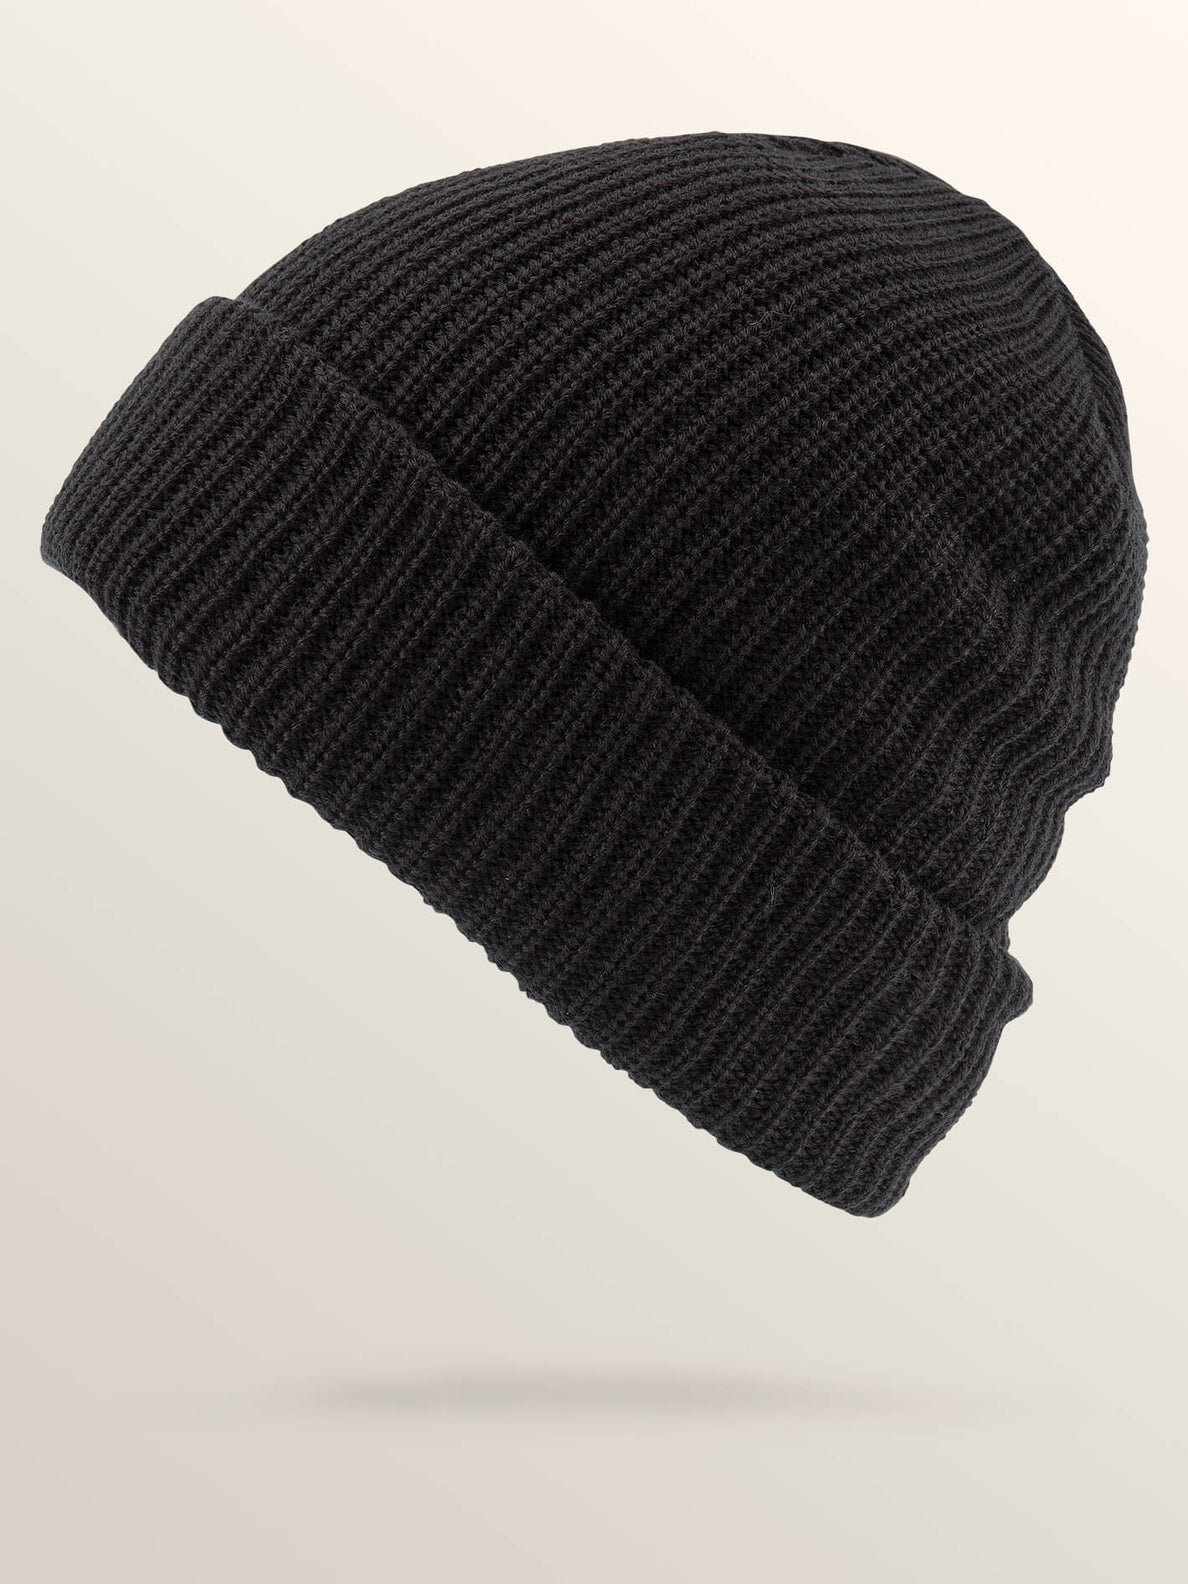 Naval Beanie In Black, Back View